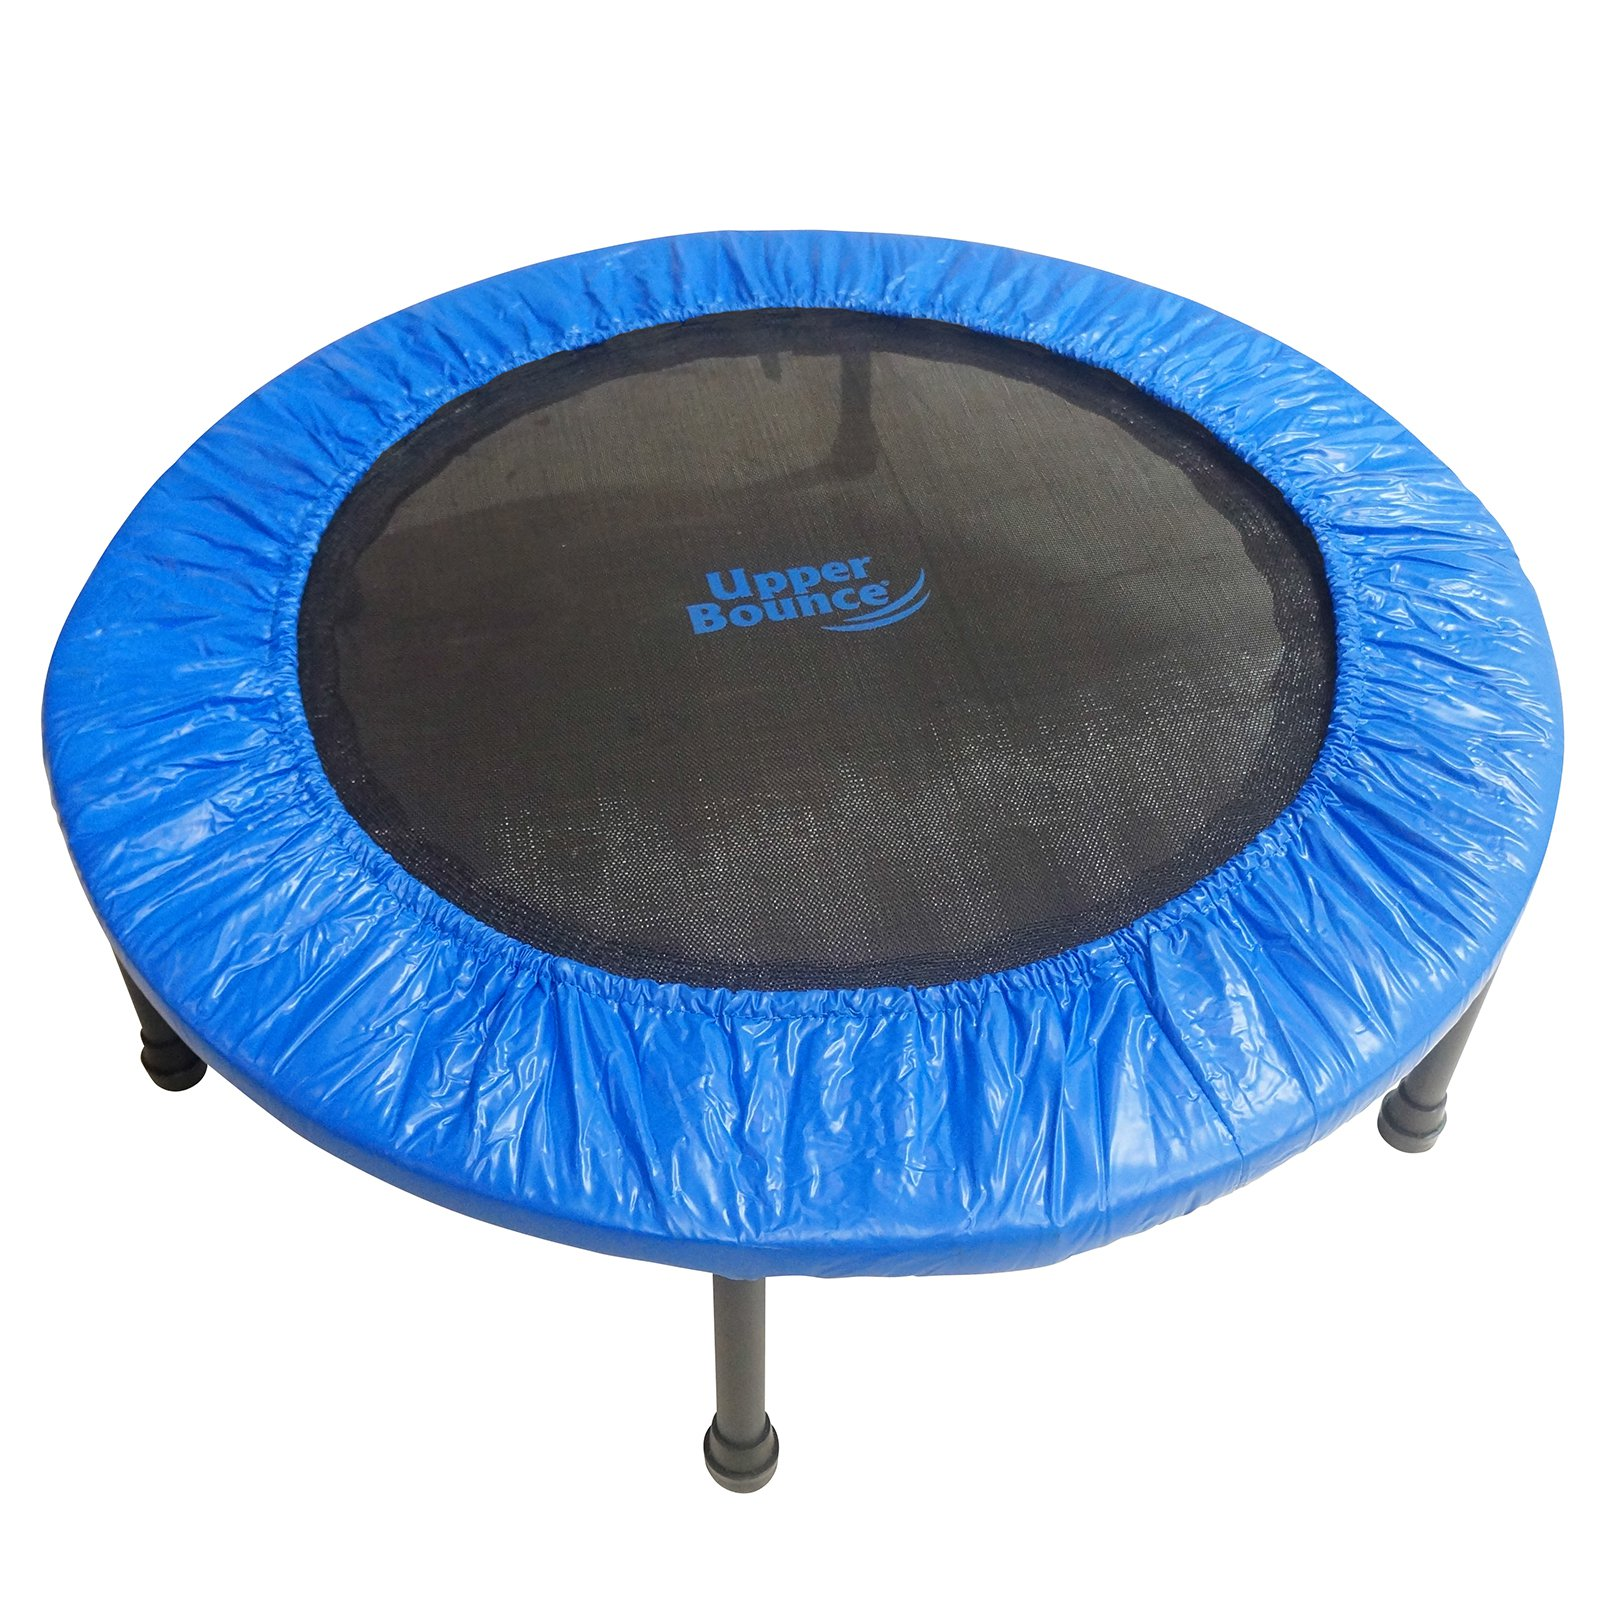 Upper Bounce 40 in. Two-Way Foldable Rebounder Trampoline with Carry-On Bag